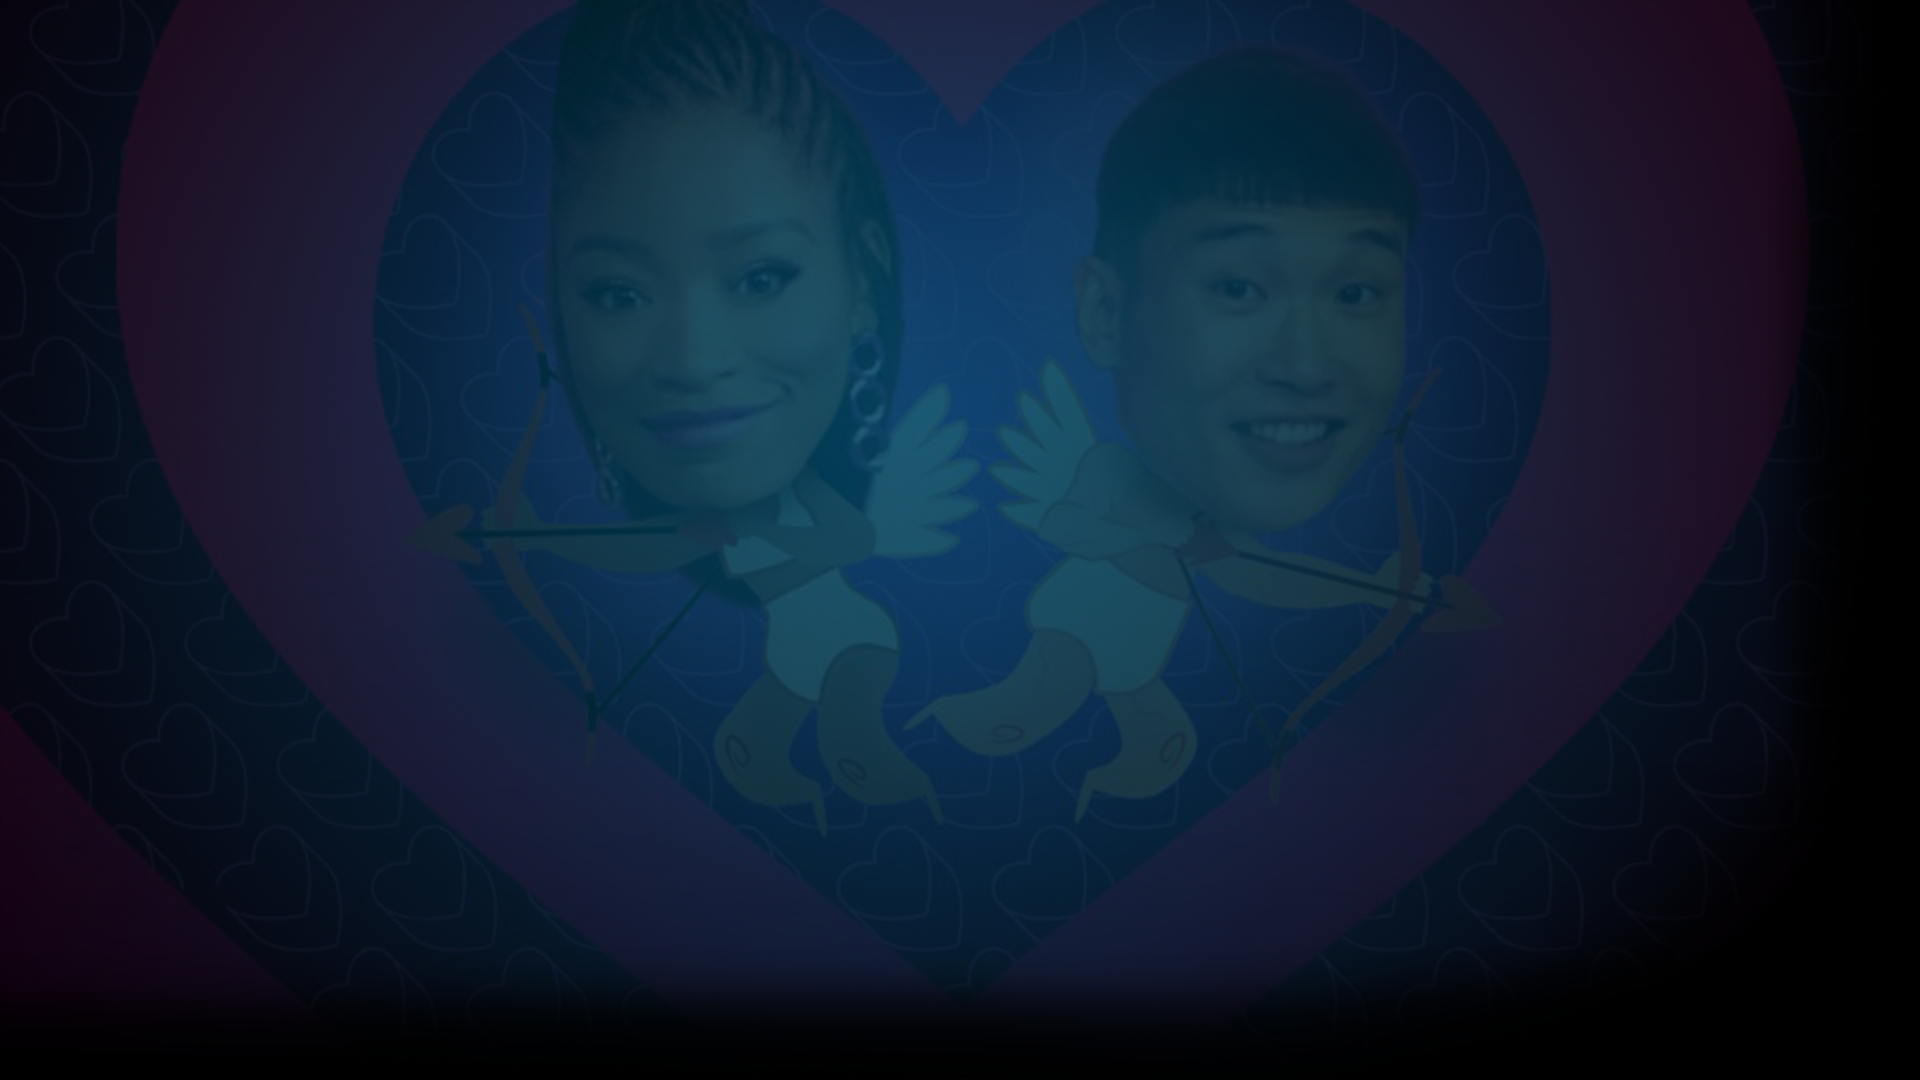 Keke Palmer and Joel Kim Booster, host of Quibi dating show, Singled Out